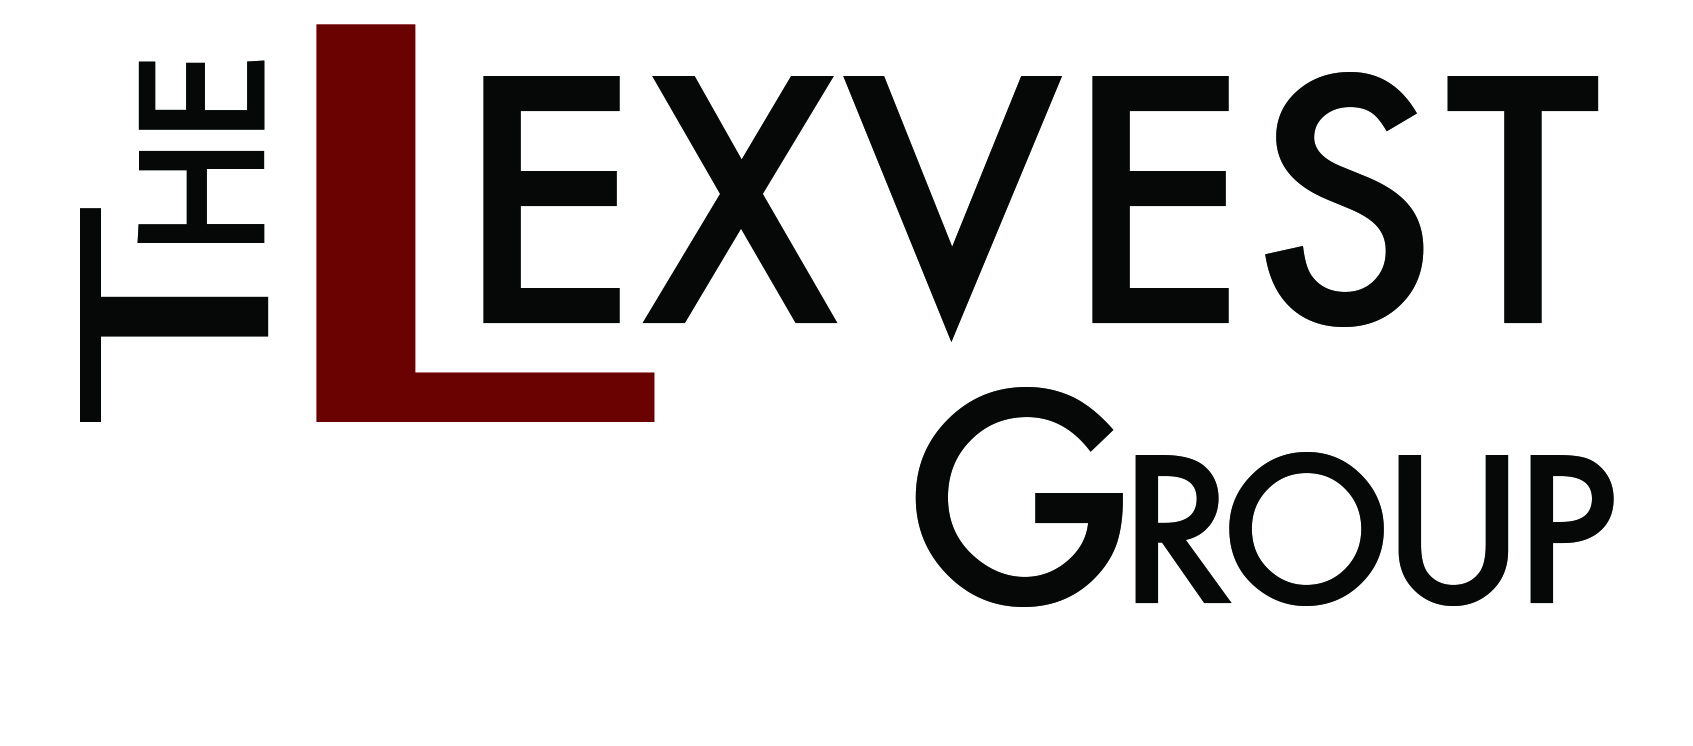 LEXVEST GROUP, LLC